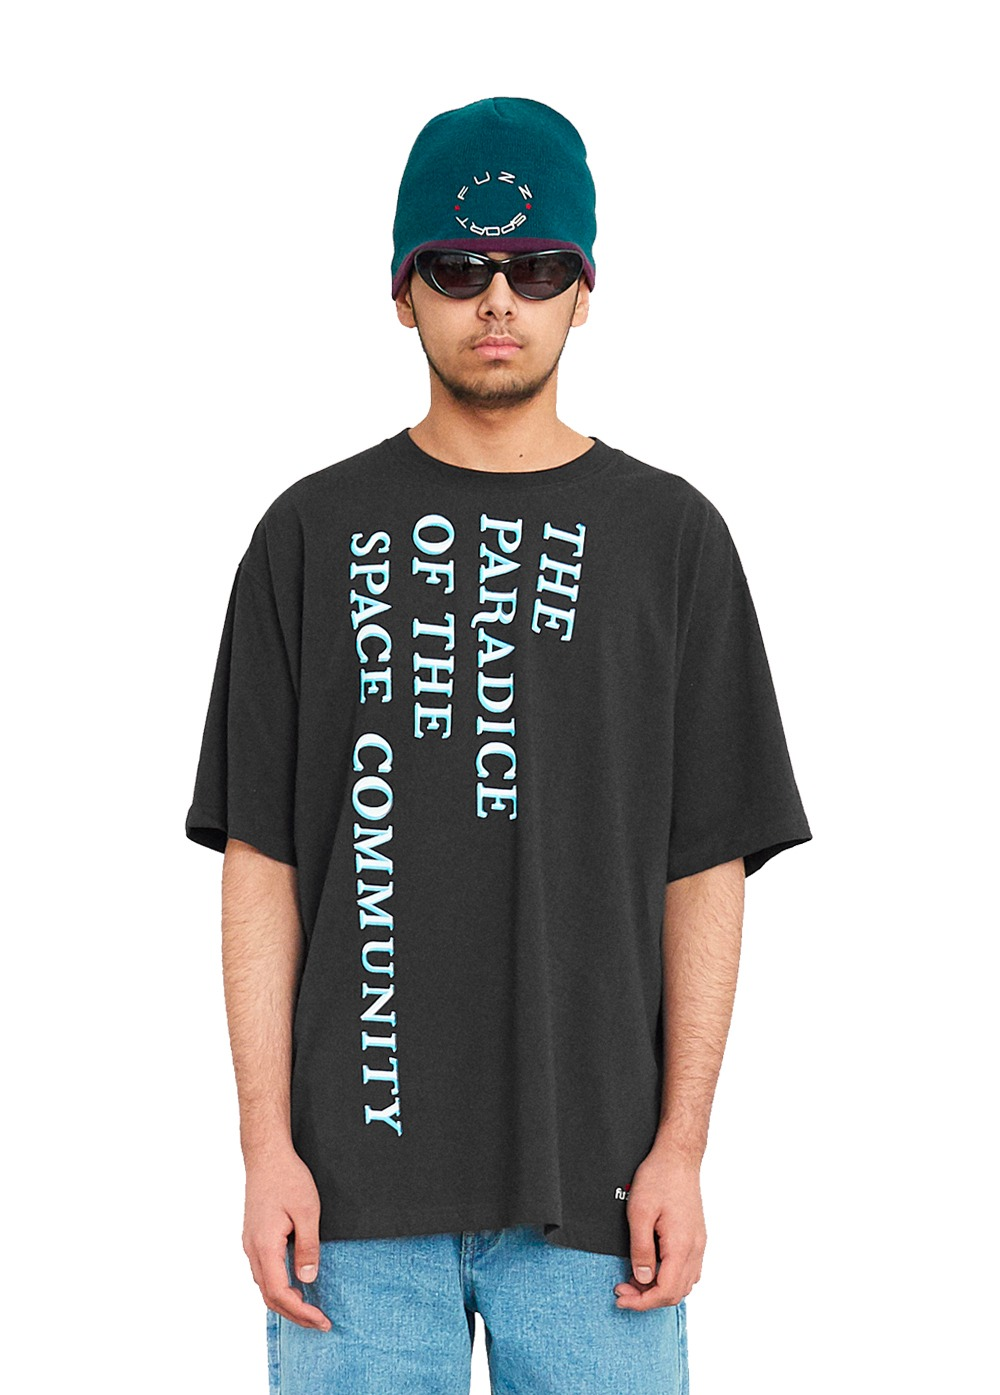 FUZZ INFORMATION CHAOS S/S TEE dark charcoal